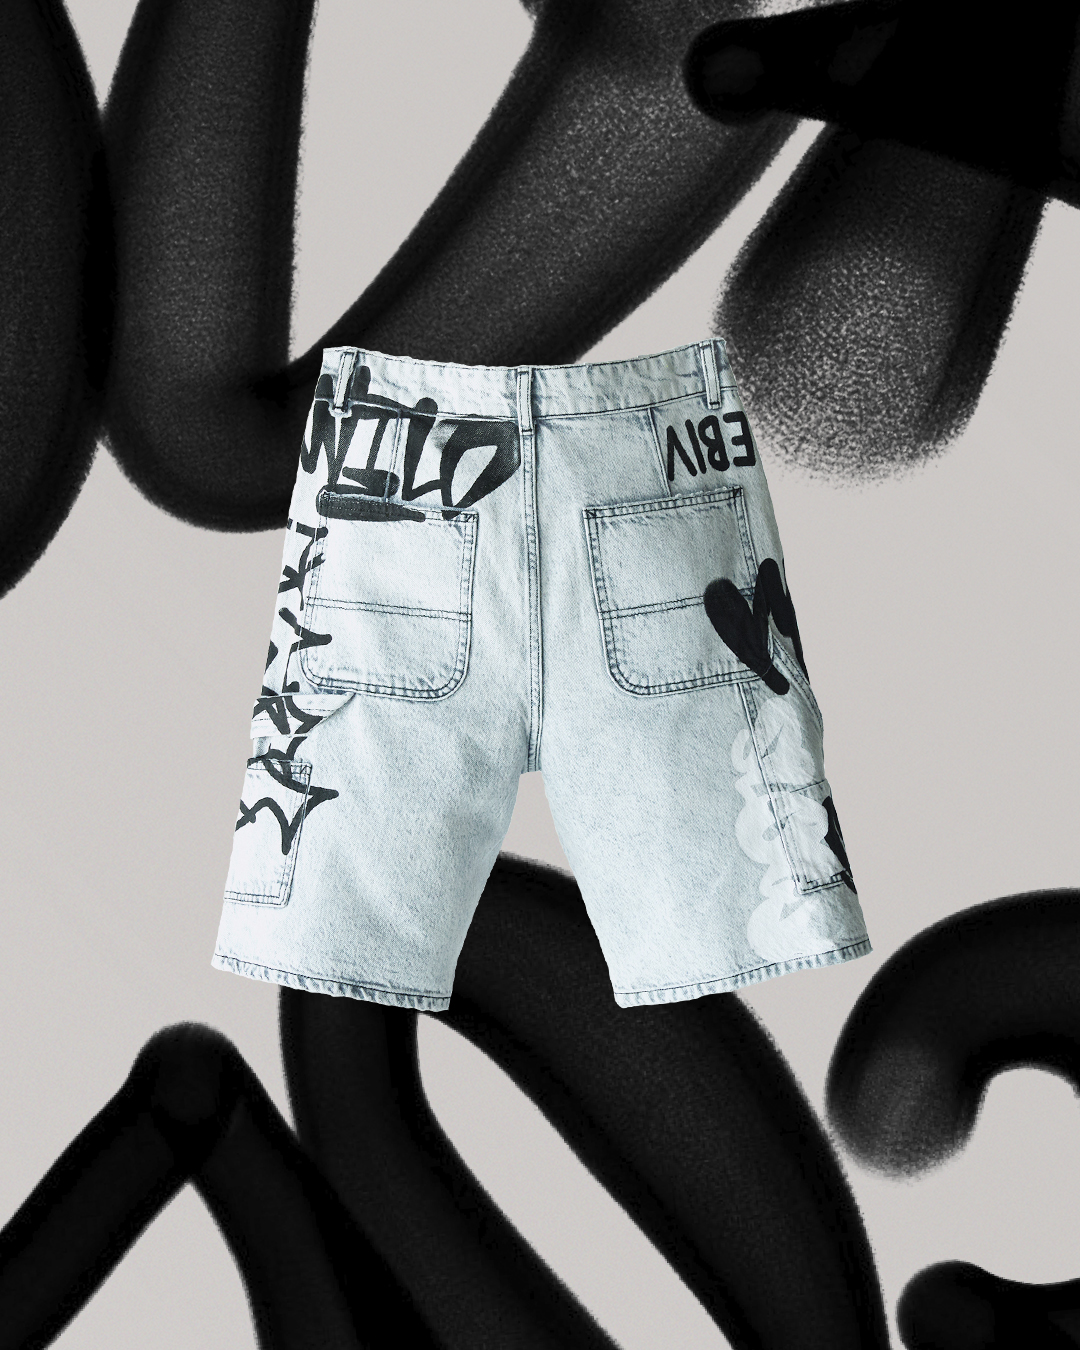 Bershka capsule Denim Graffiti